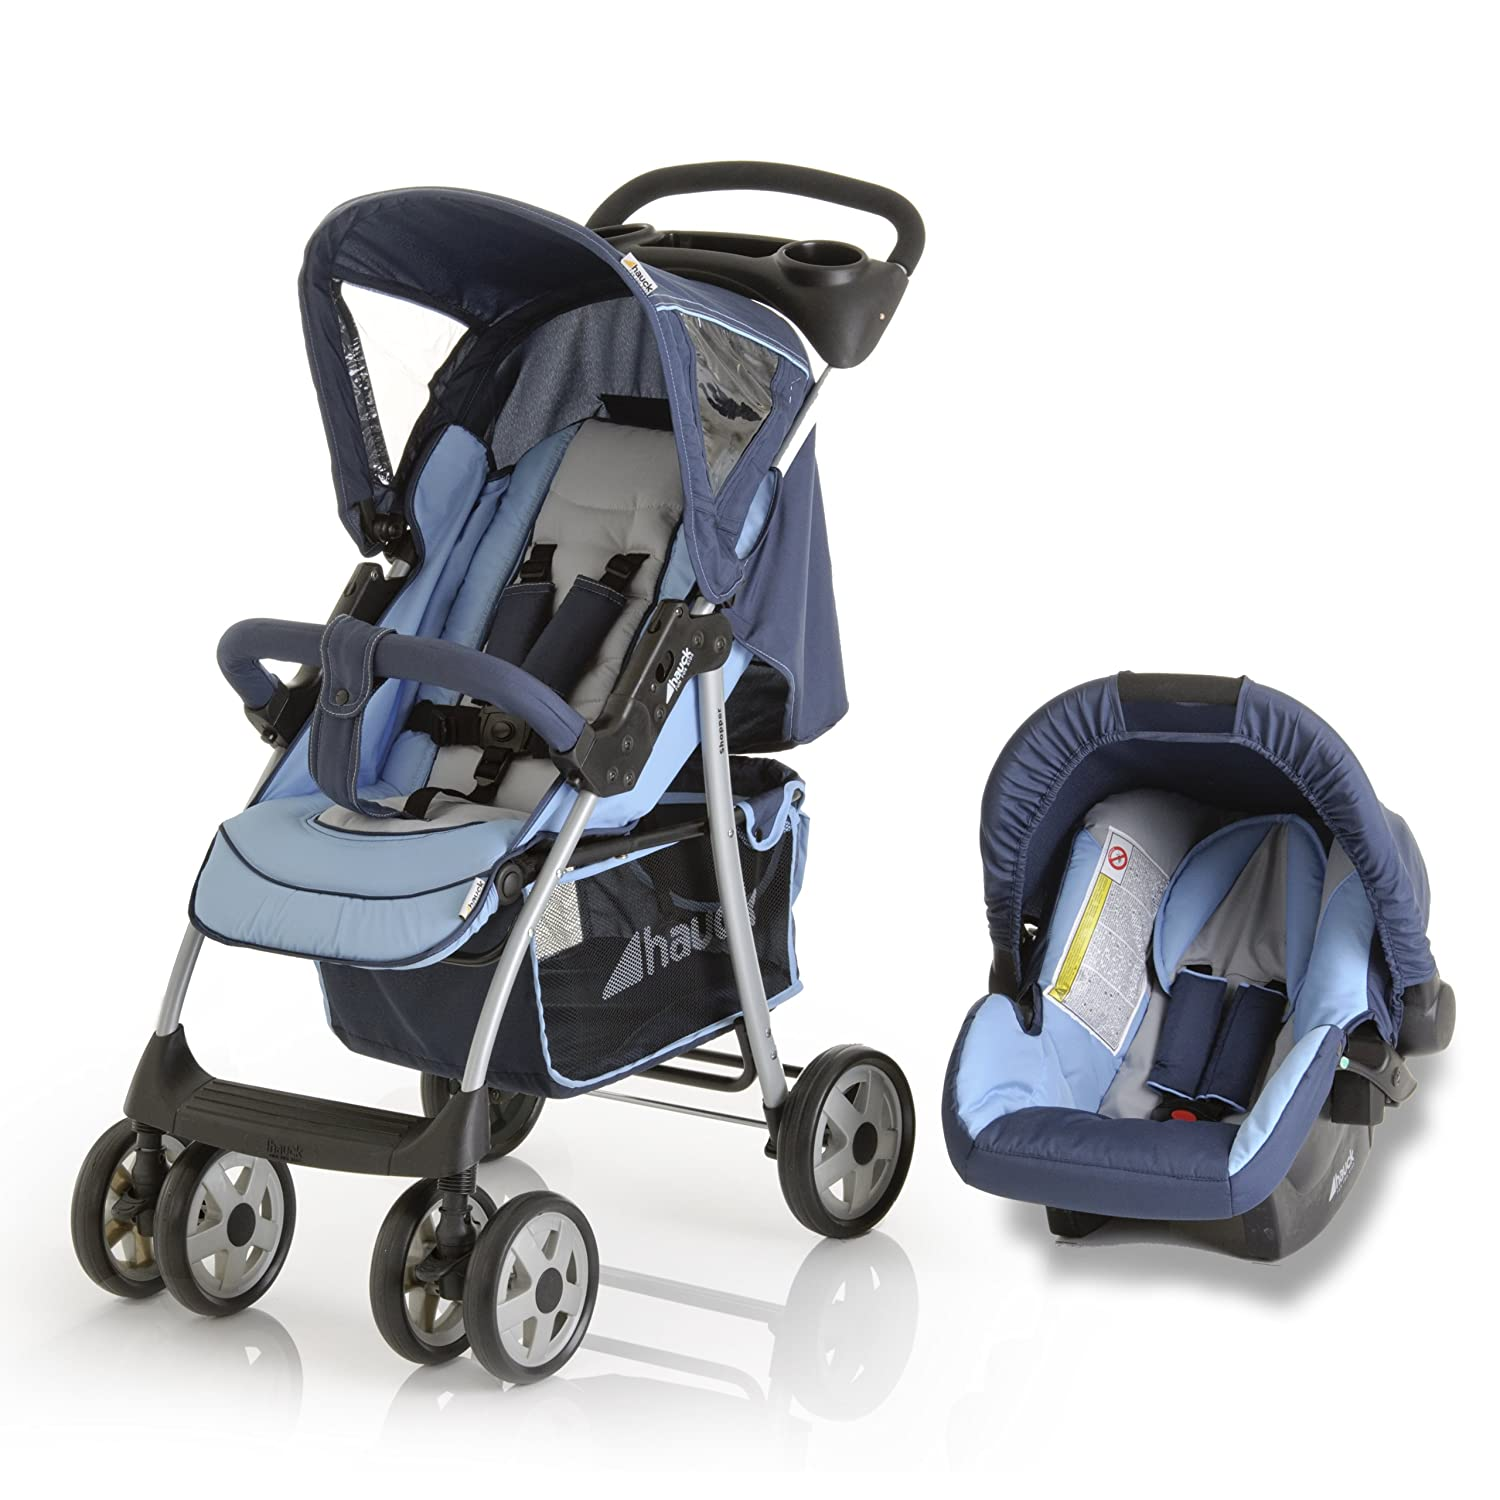 Hauck Shopper Shop N Drive - Carrito para bebé, color azul: Amazon ...